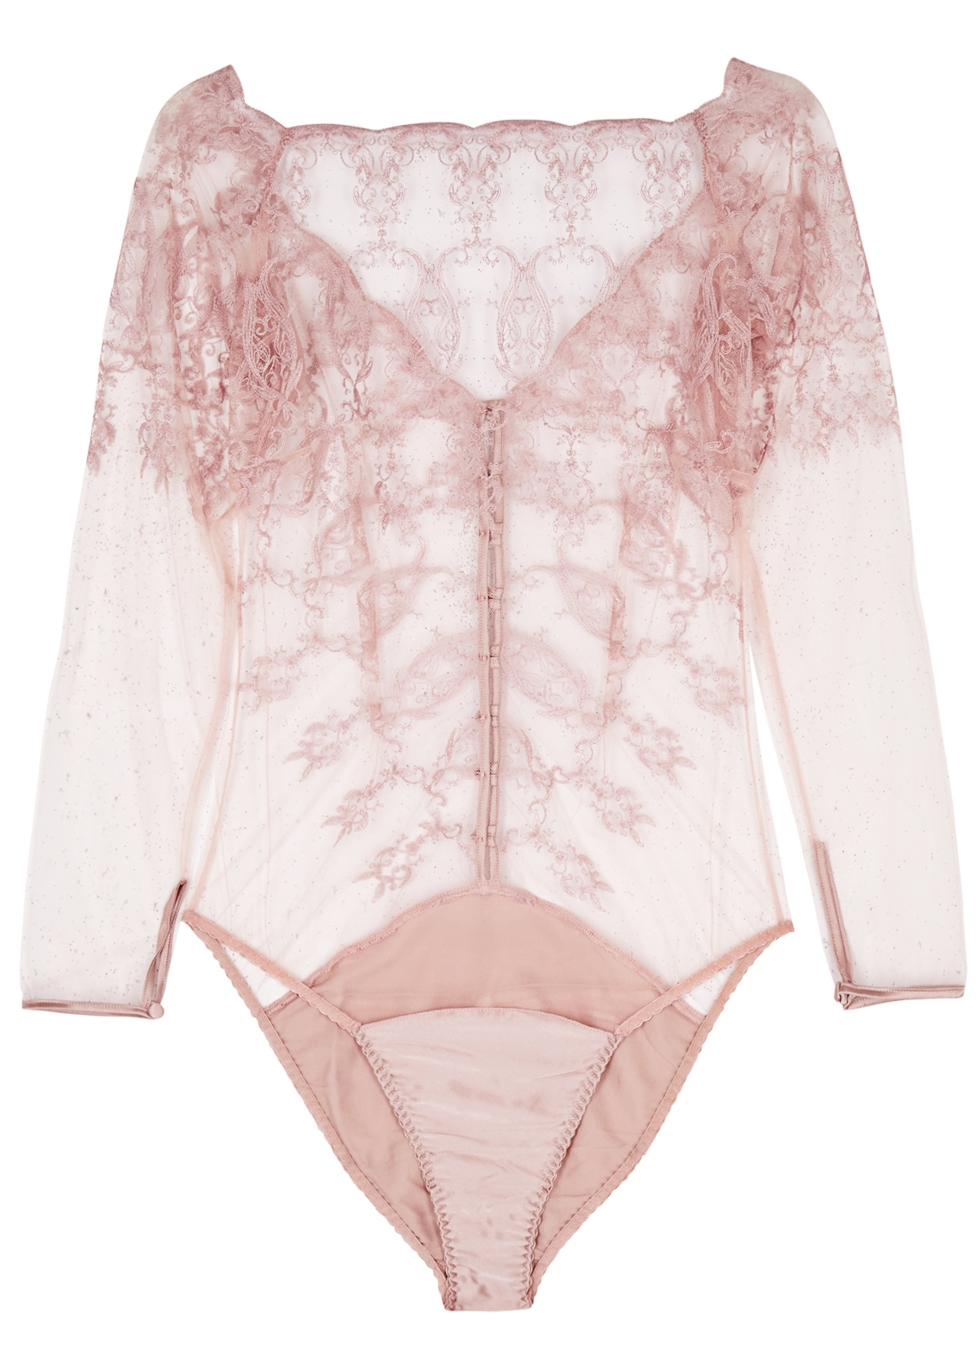 FLEUR OF ENGLAND ANTOINETTE BLUSH EMBROIDERED TULLE BODY